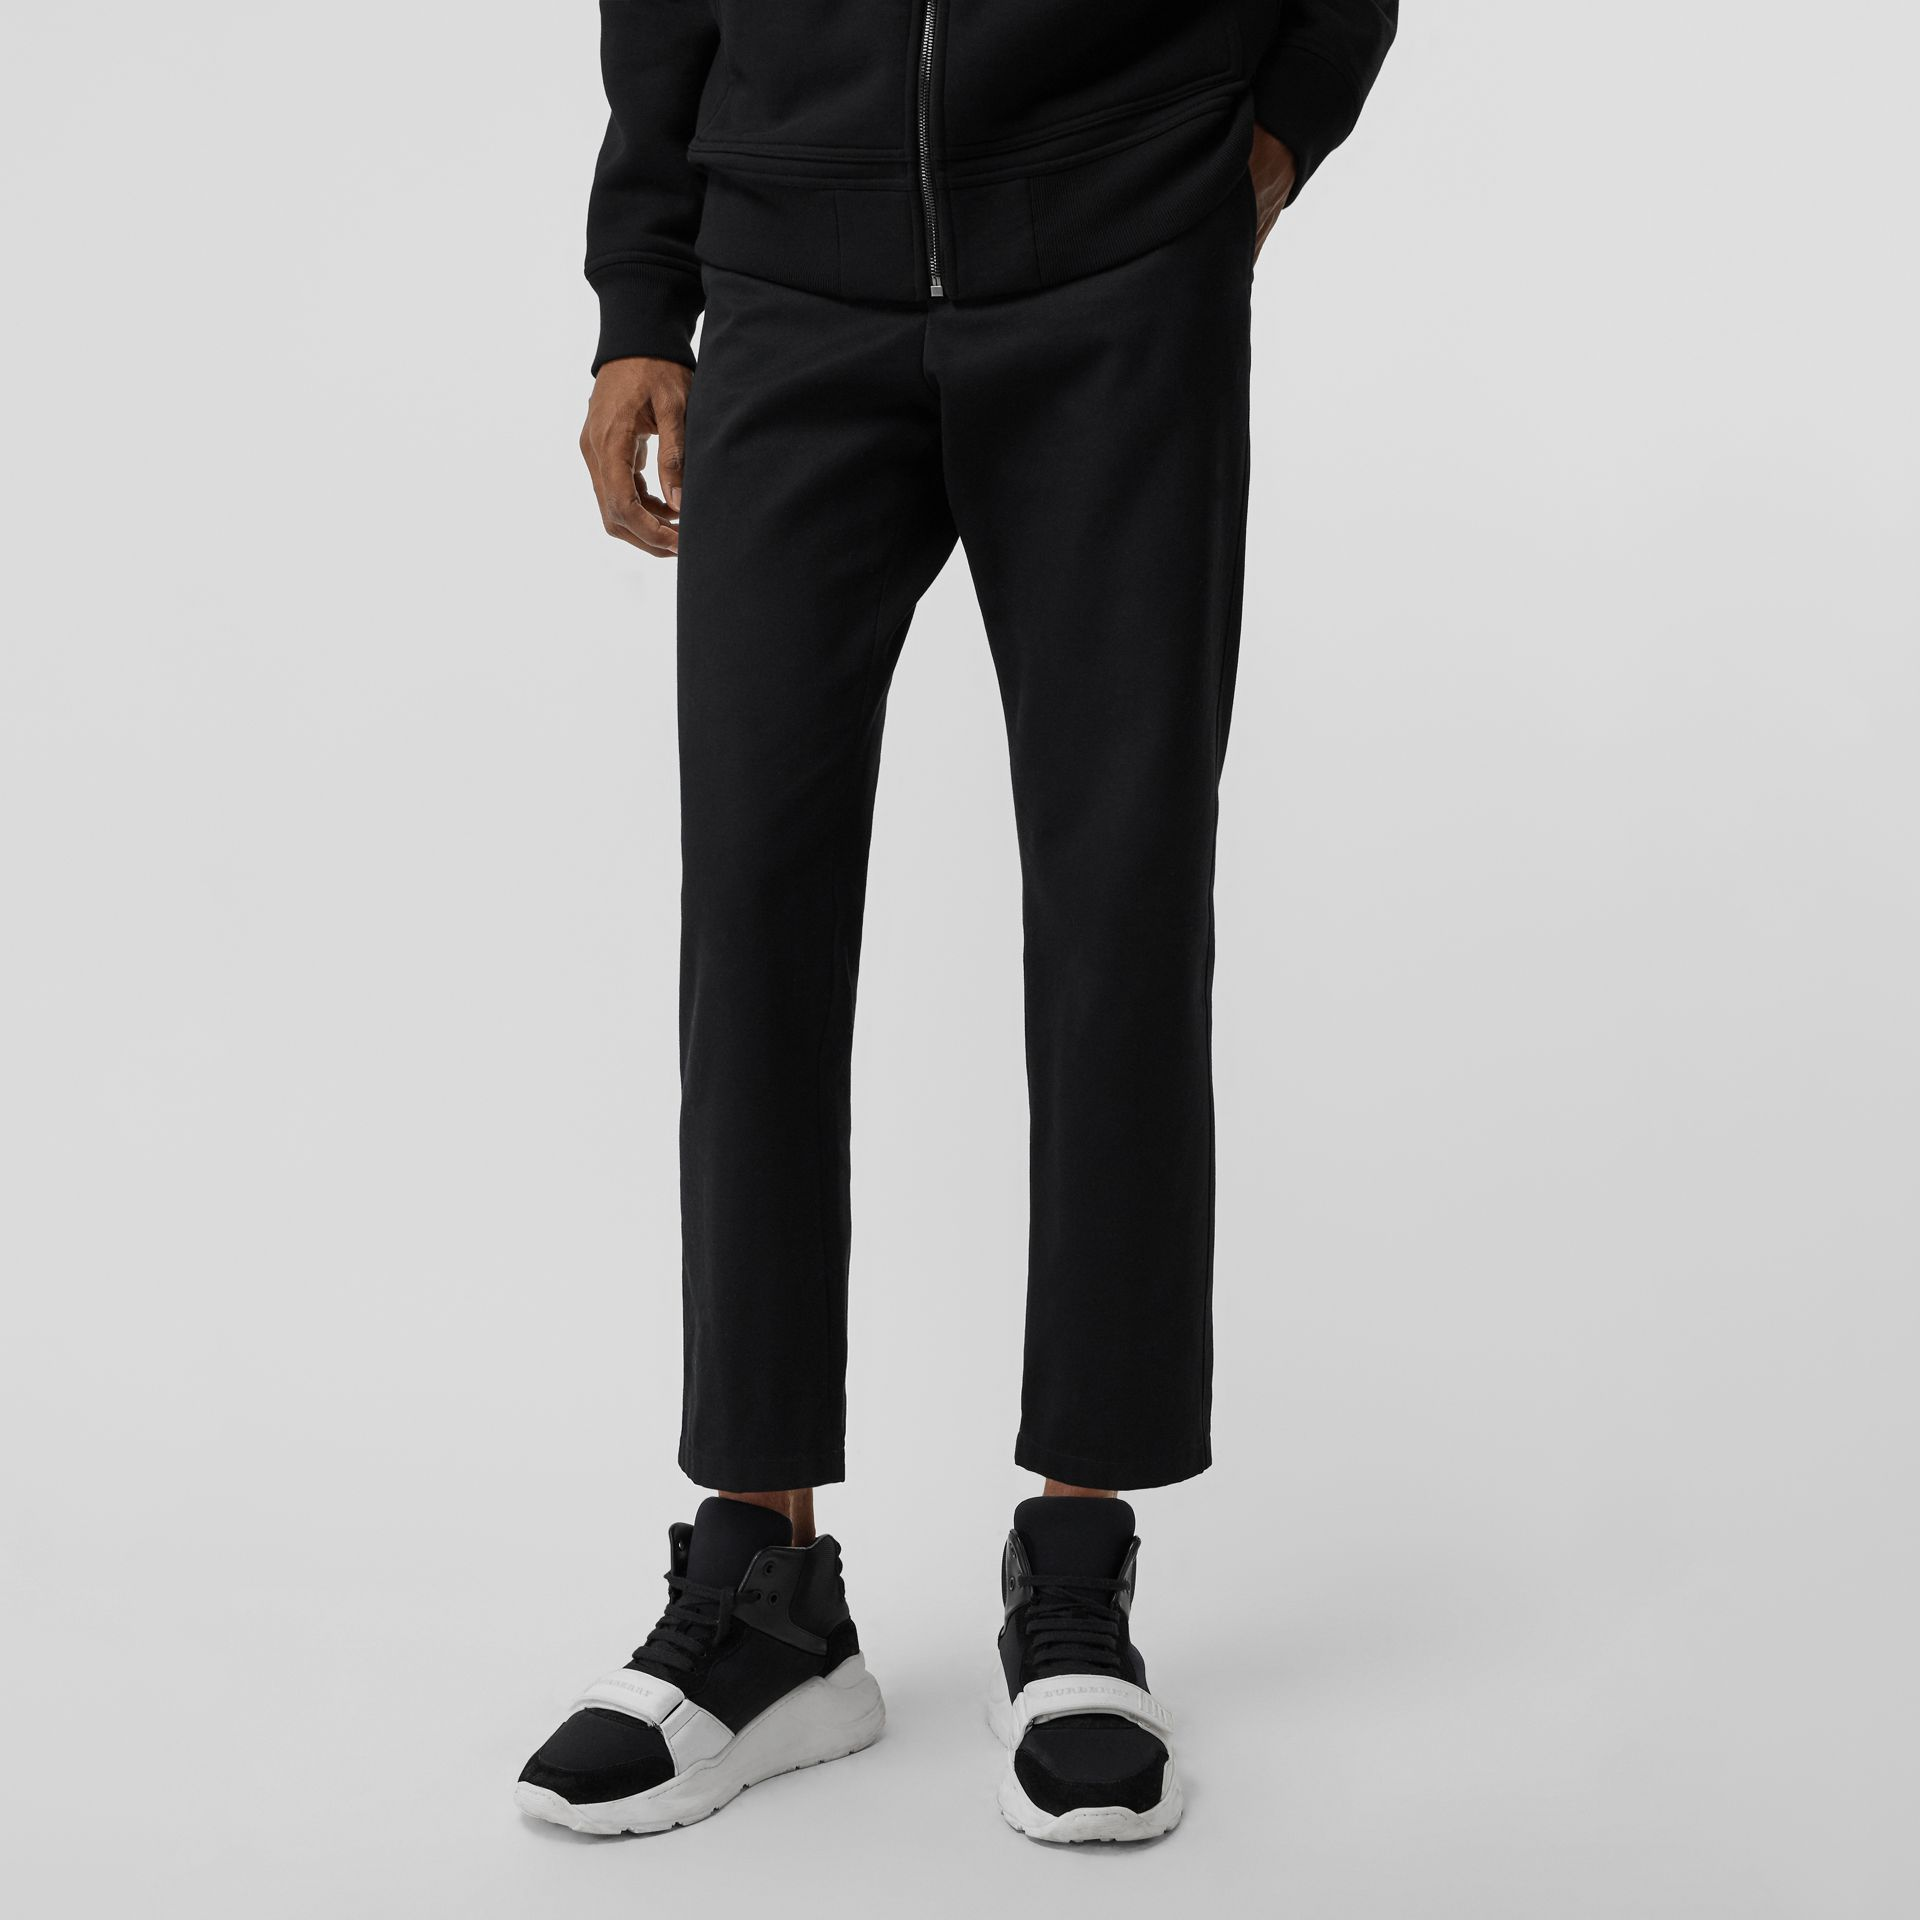 Slim Fit Cotton Blend Chinos in Black - Men | Burberry - gallery image 4